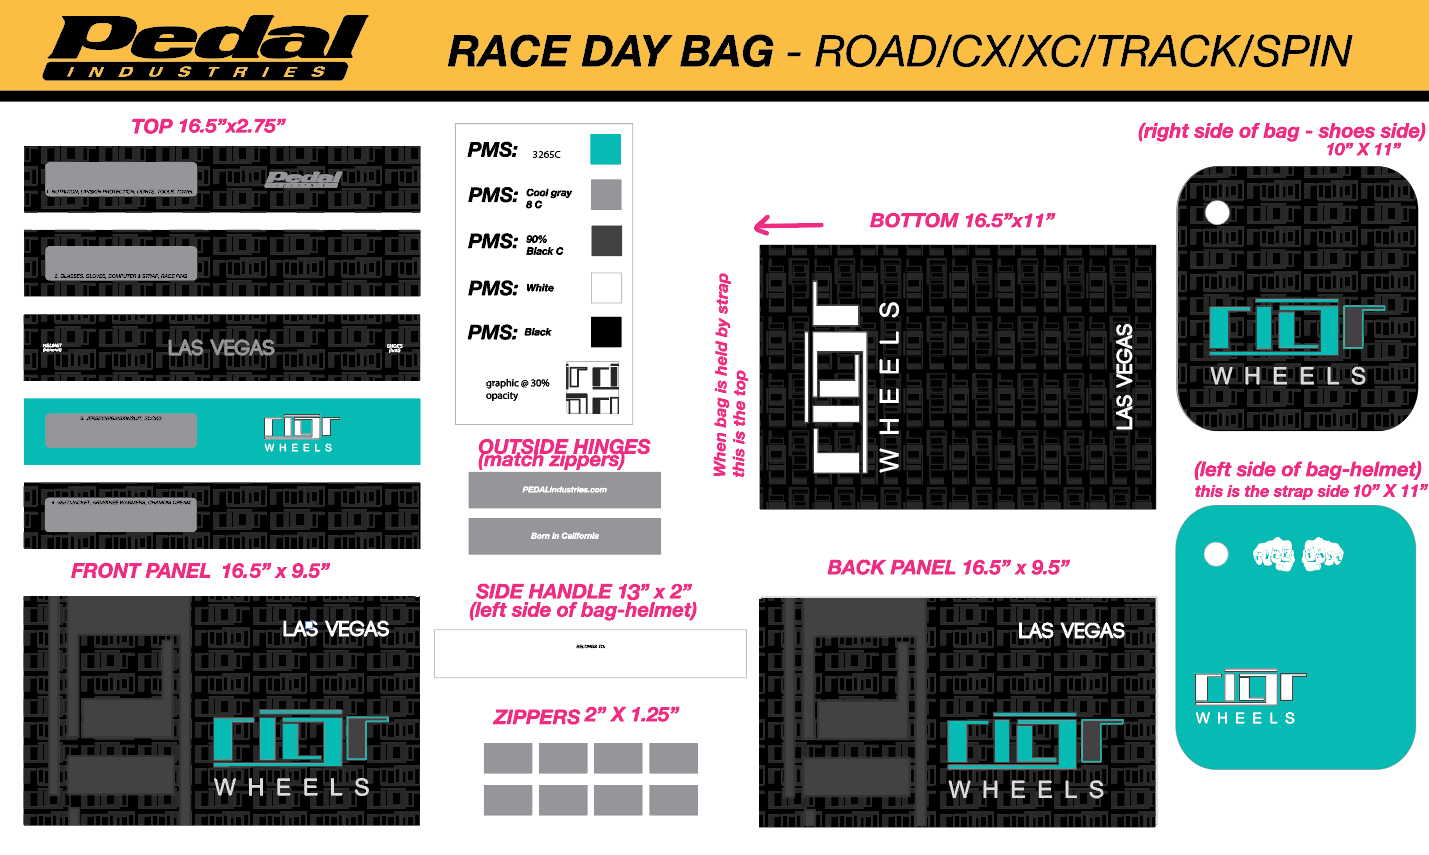 A-R RACEDAY BAG WOMENS